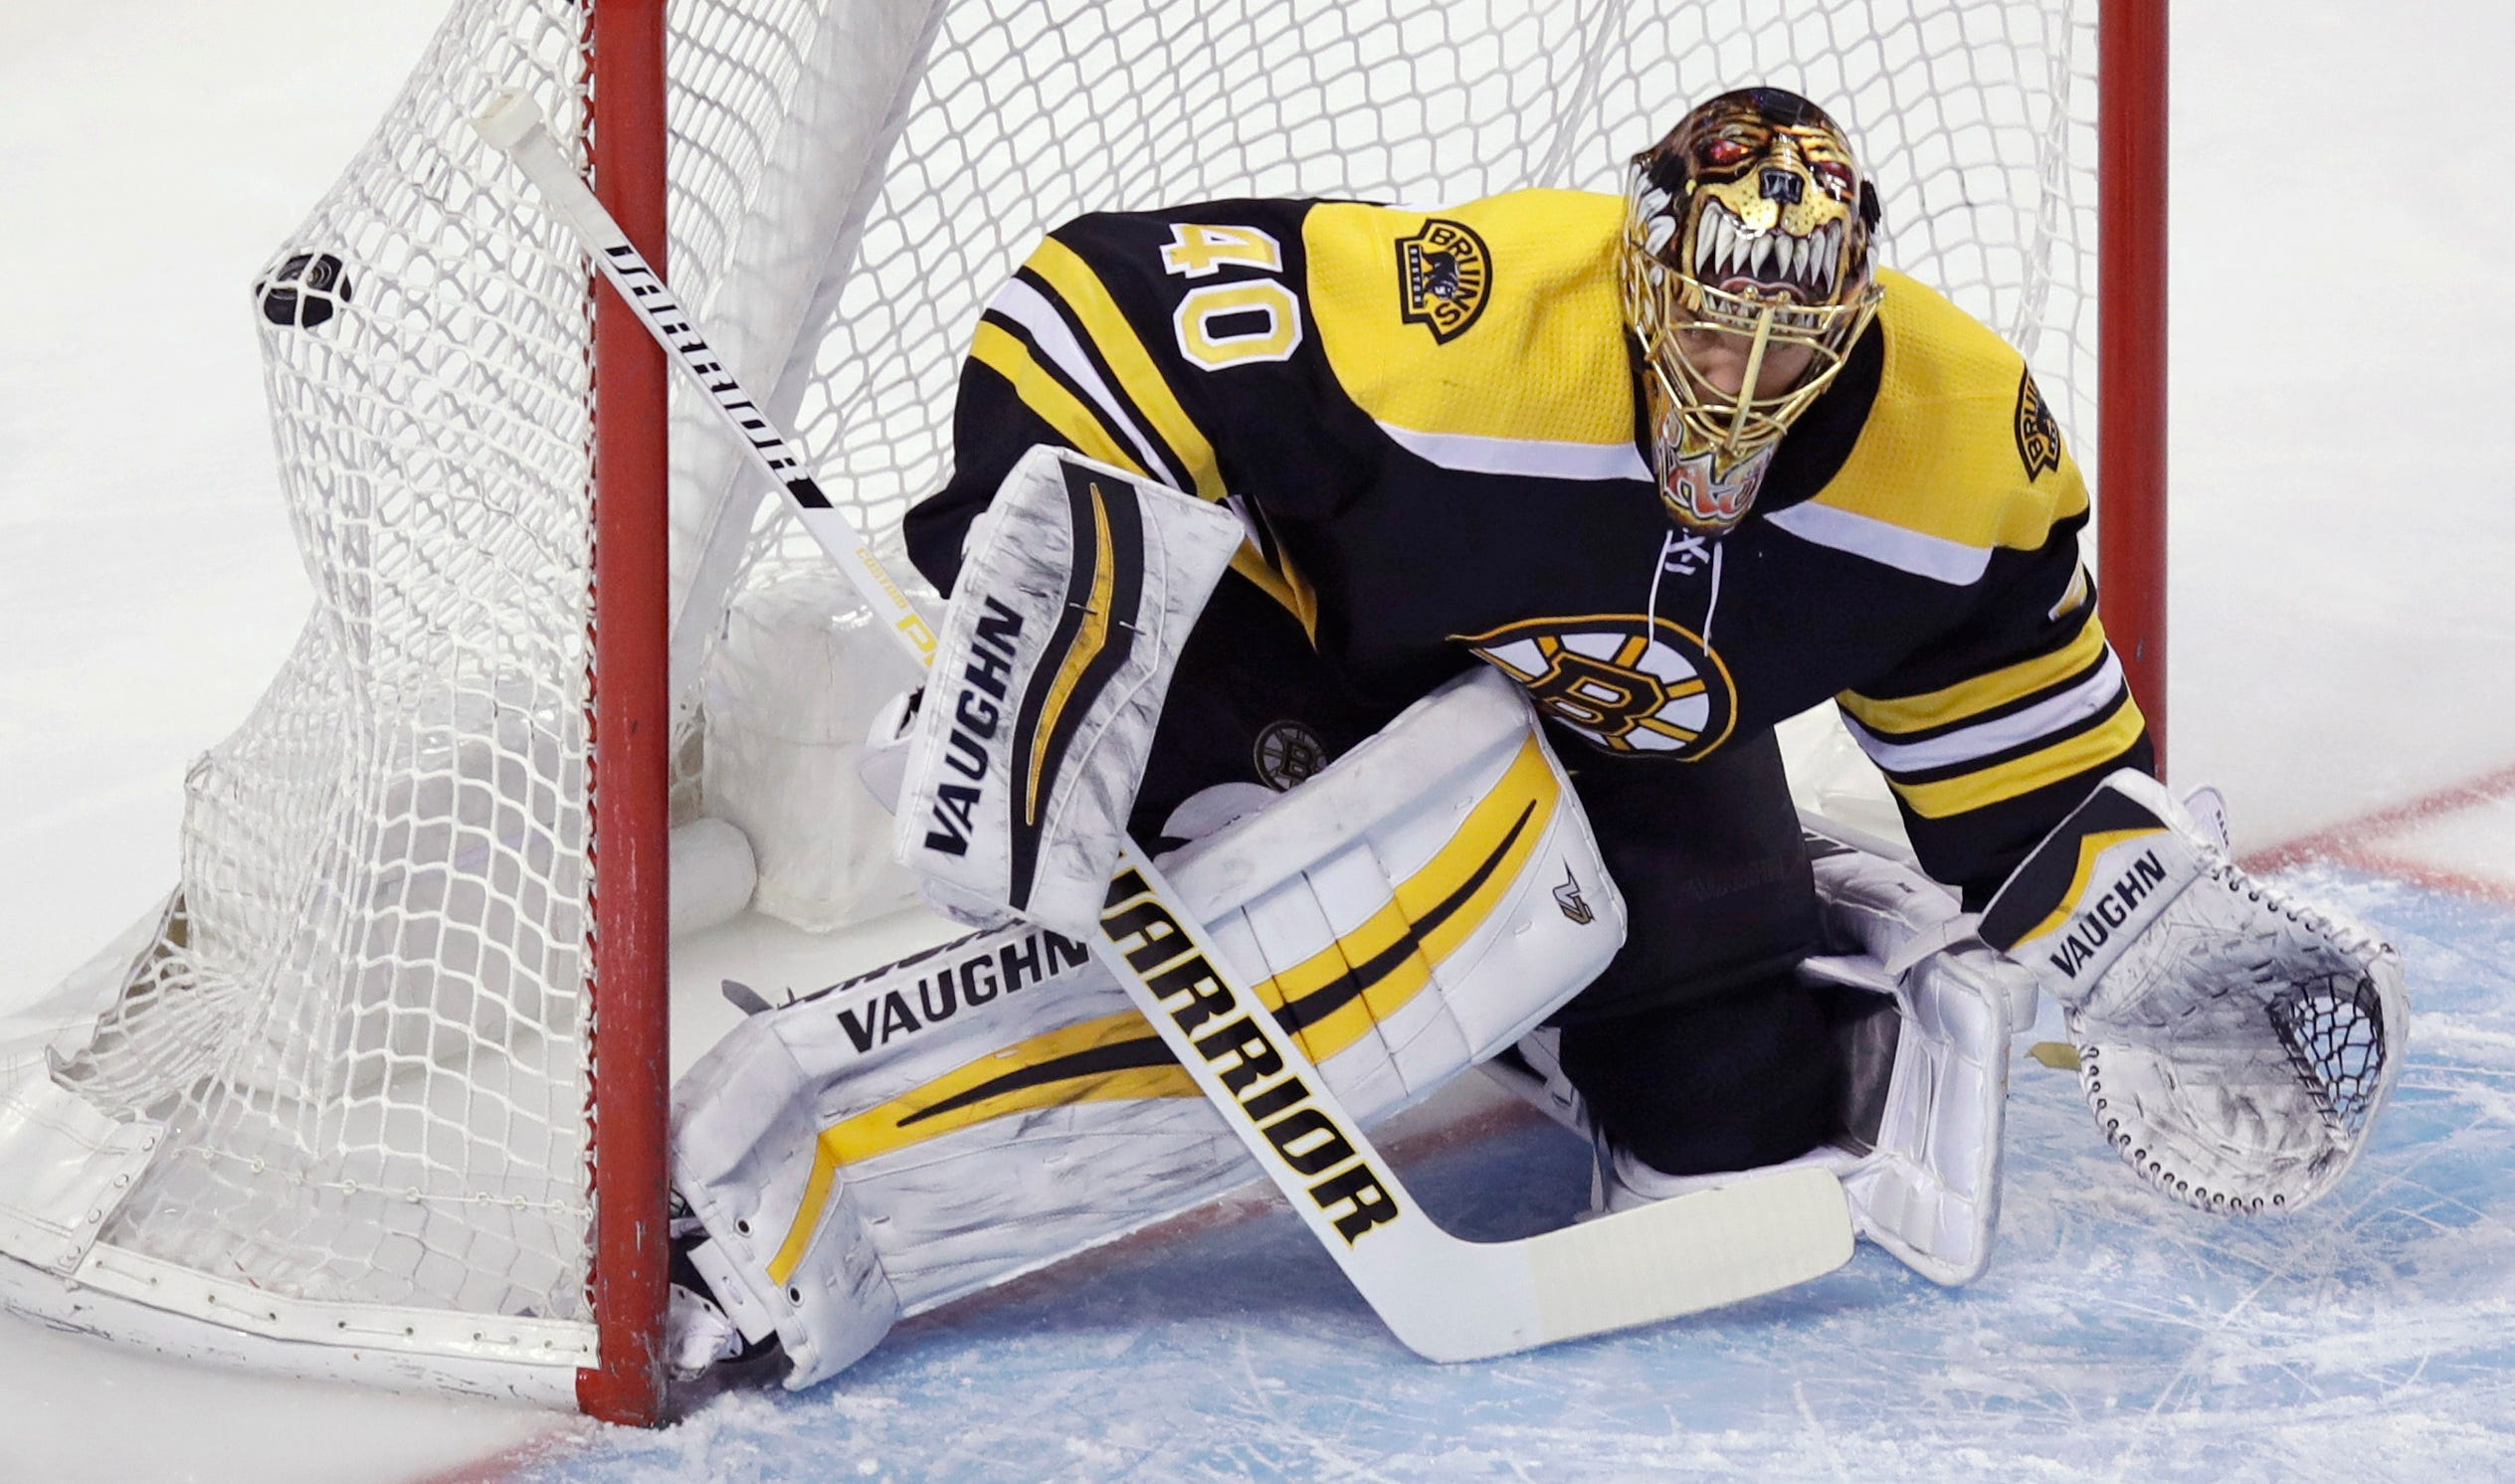 Atkinson scores in OT to lift Blue Jackets past Bruins, 5-4